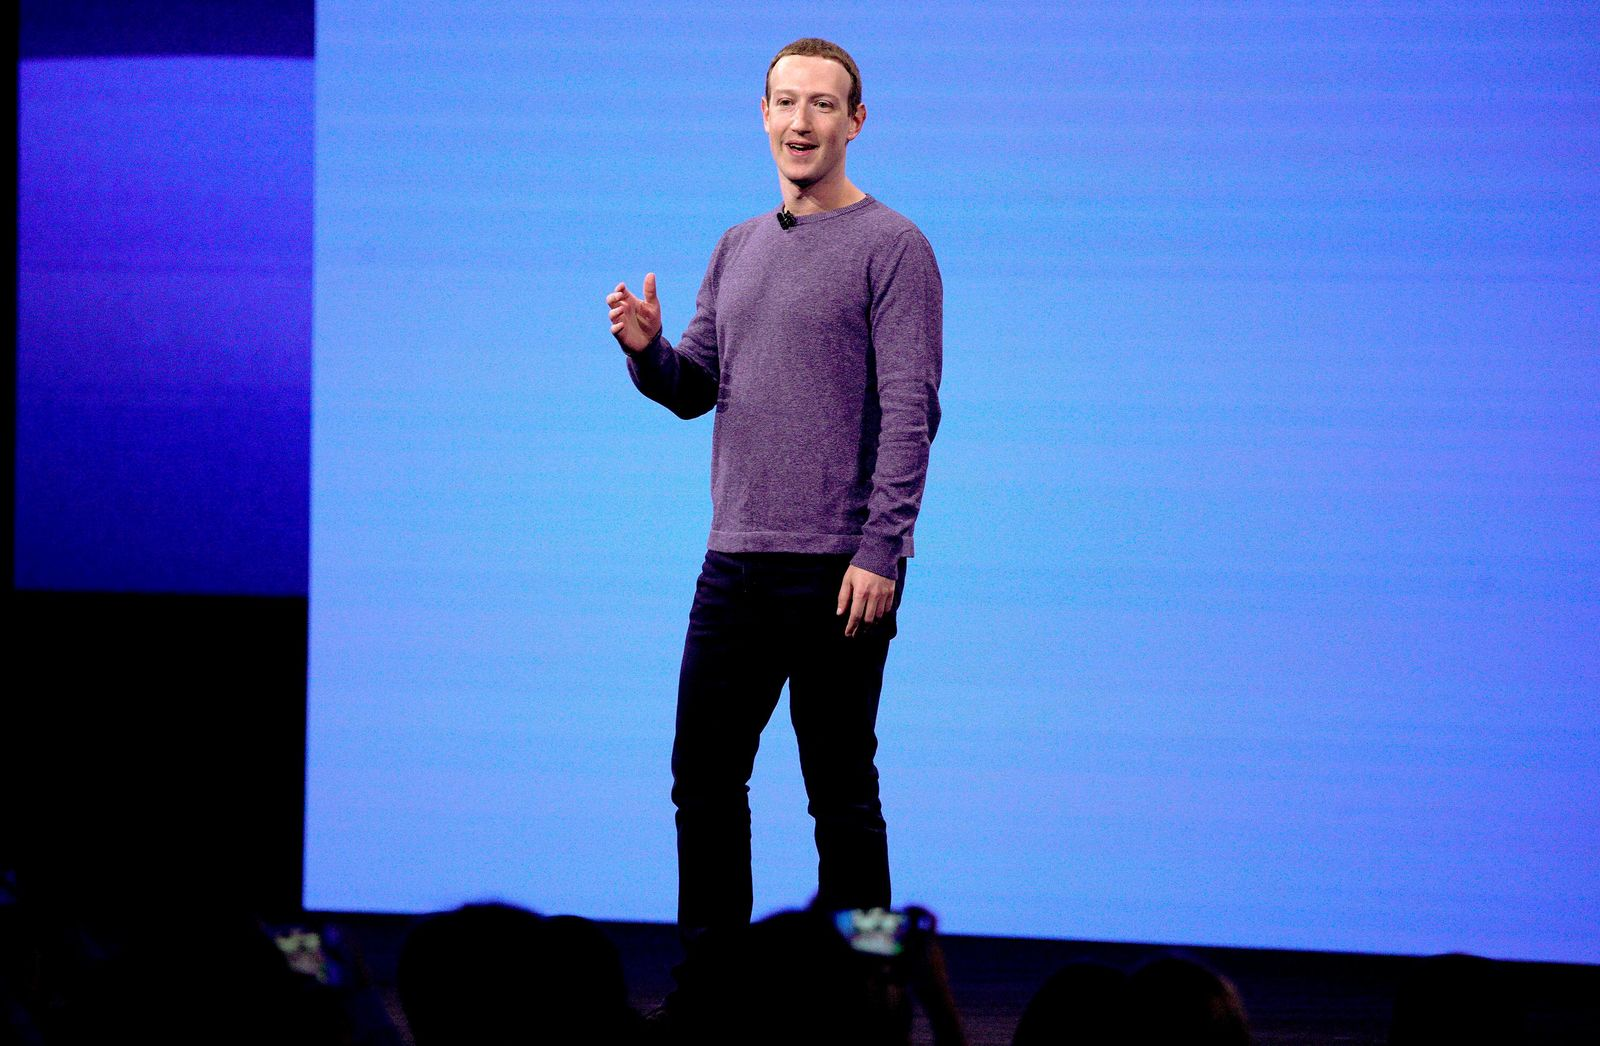 FILE - In this April 30, 2019, file photo, Facebook CEO Mark Zuckerberg makes the keynote speech at F8, Facebook's developer conference in San Jose, Calif.{ } (AP Photo/Tony Avelar, File)